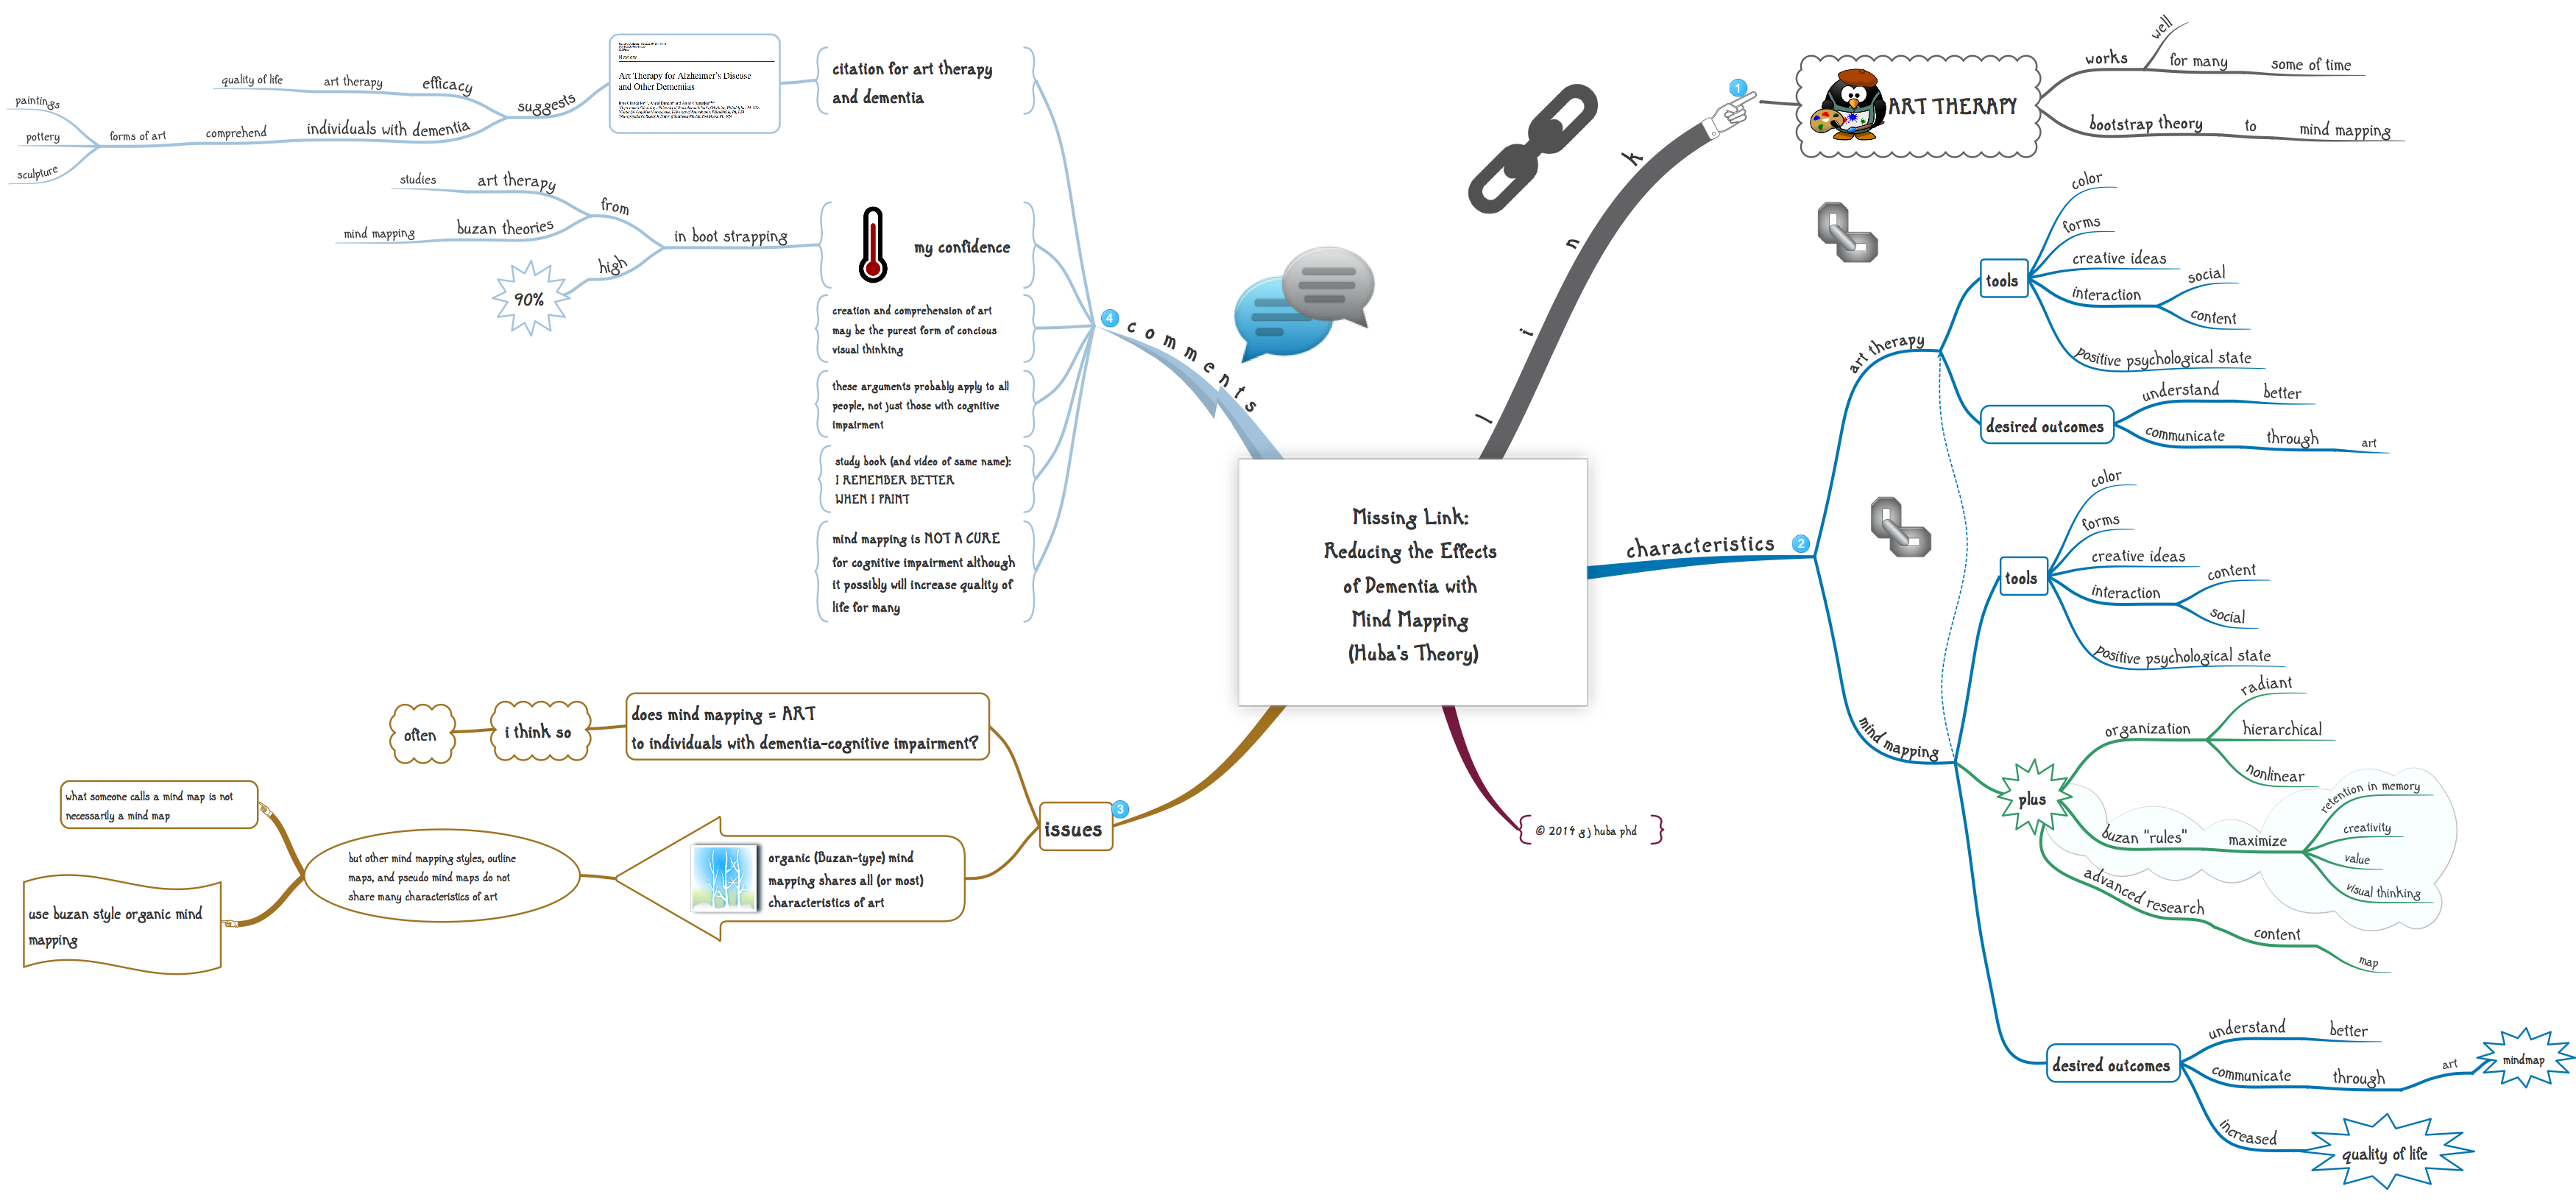 Missing Link  Reducing the Effects  of Dementia with  Mind Mapping  (Huba's Theory)